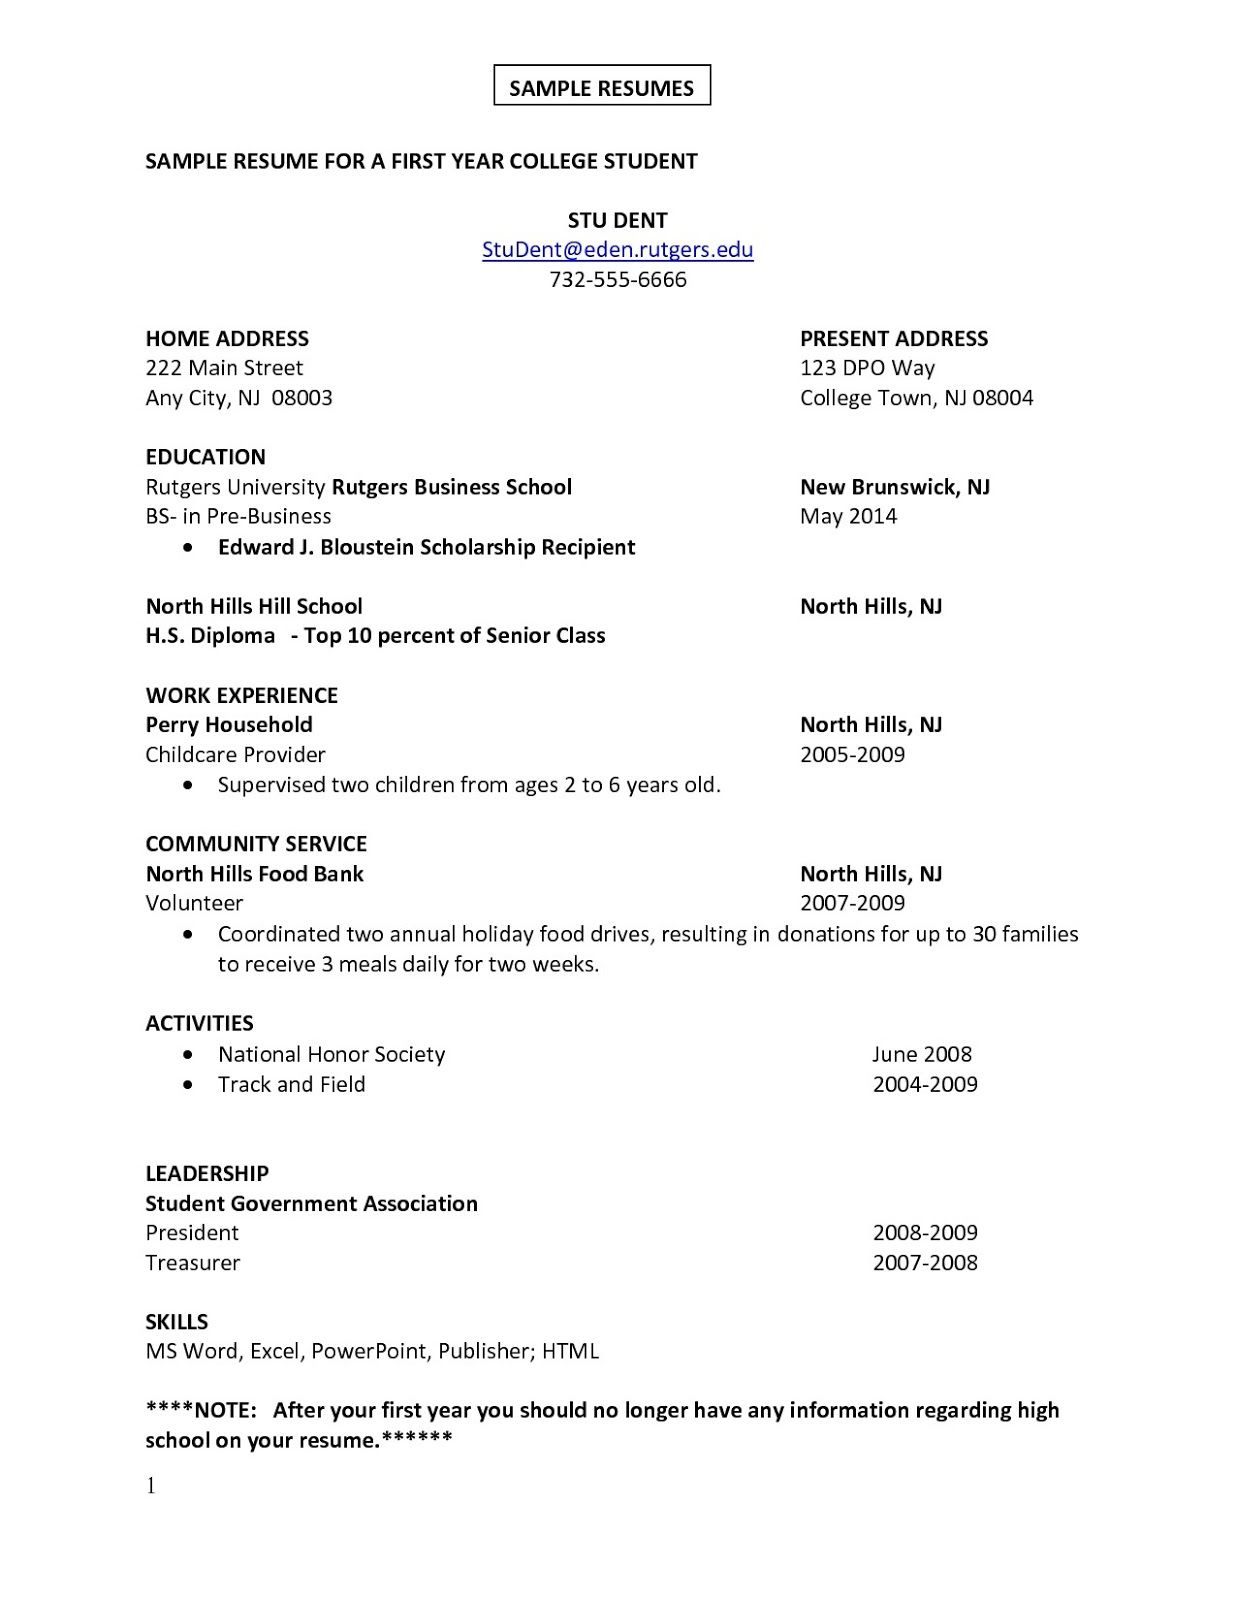 Resume For First Job First Job Sample Resume  Sample Resumes  Sample Resumes